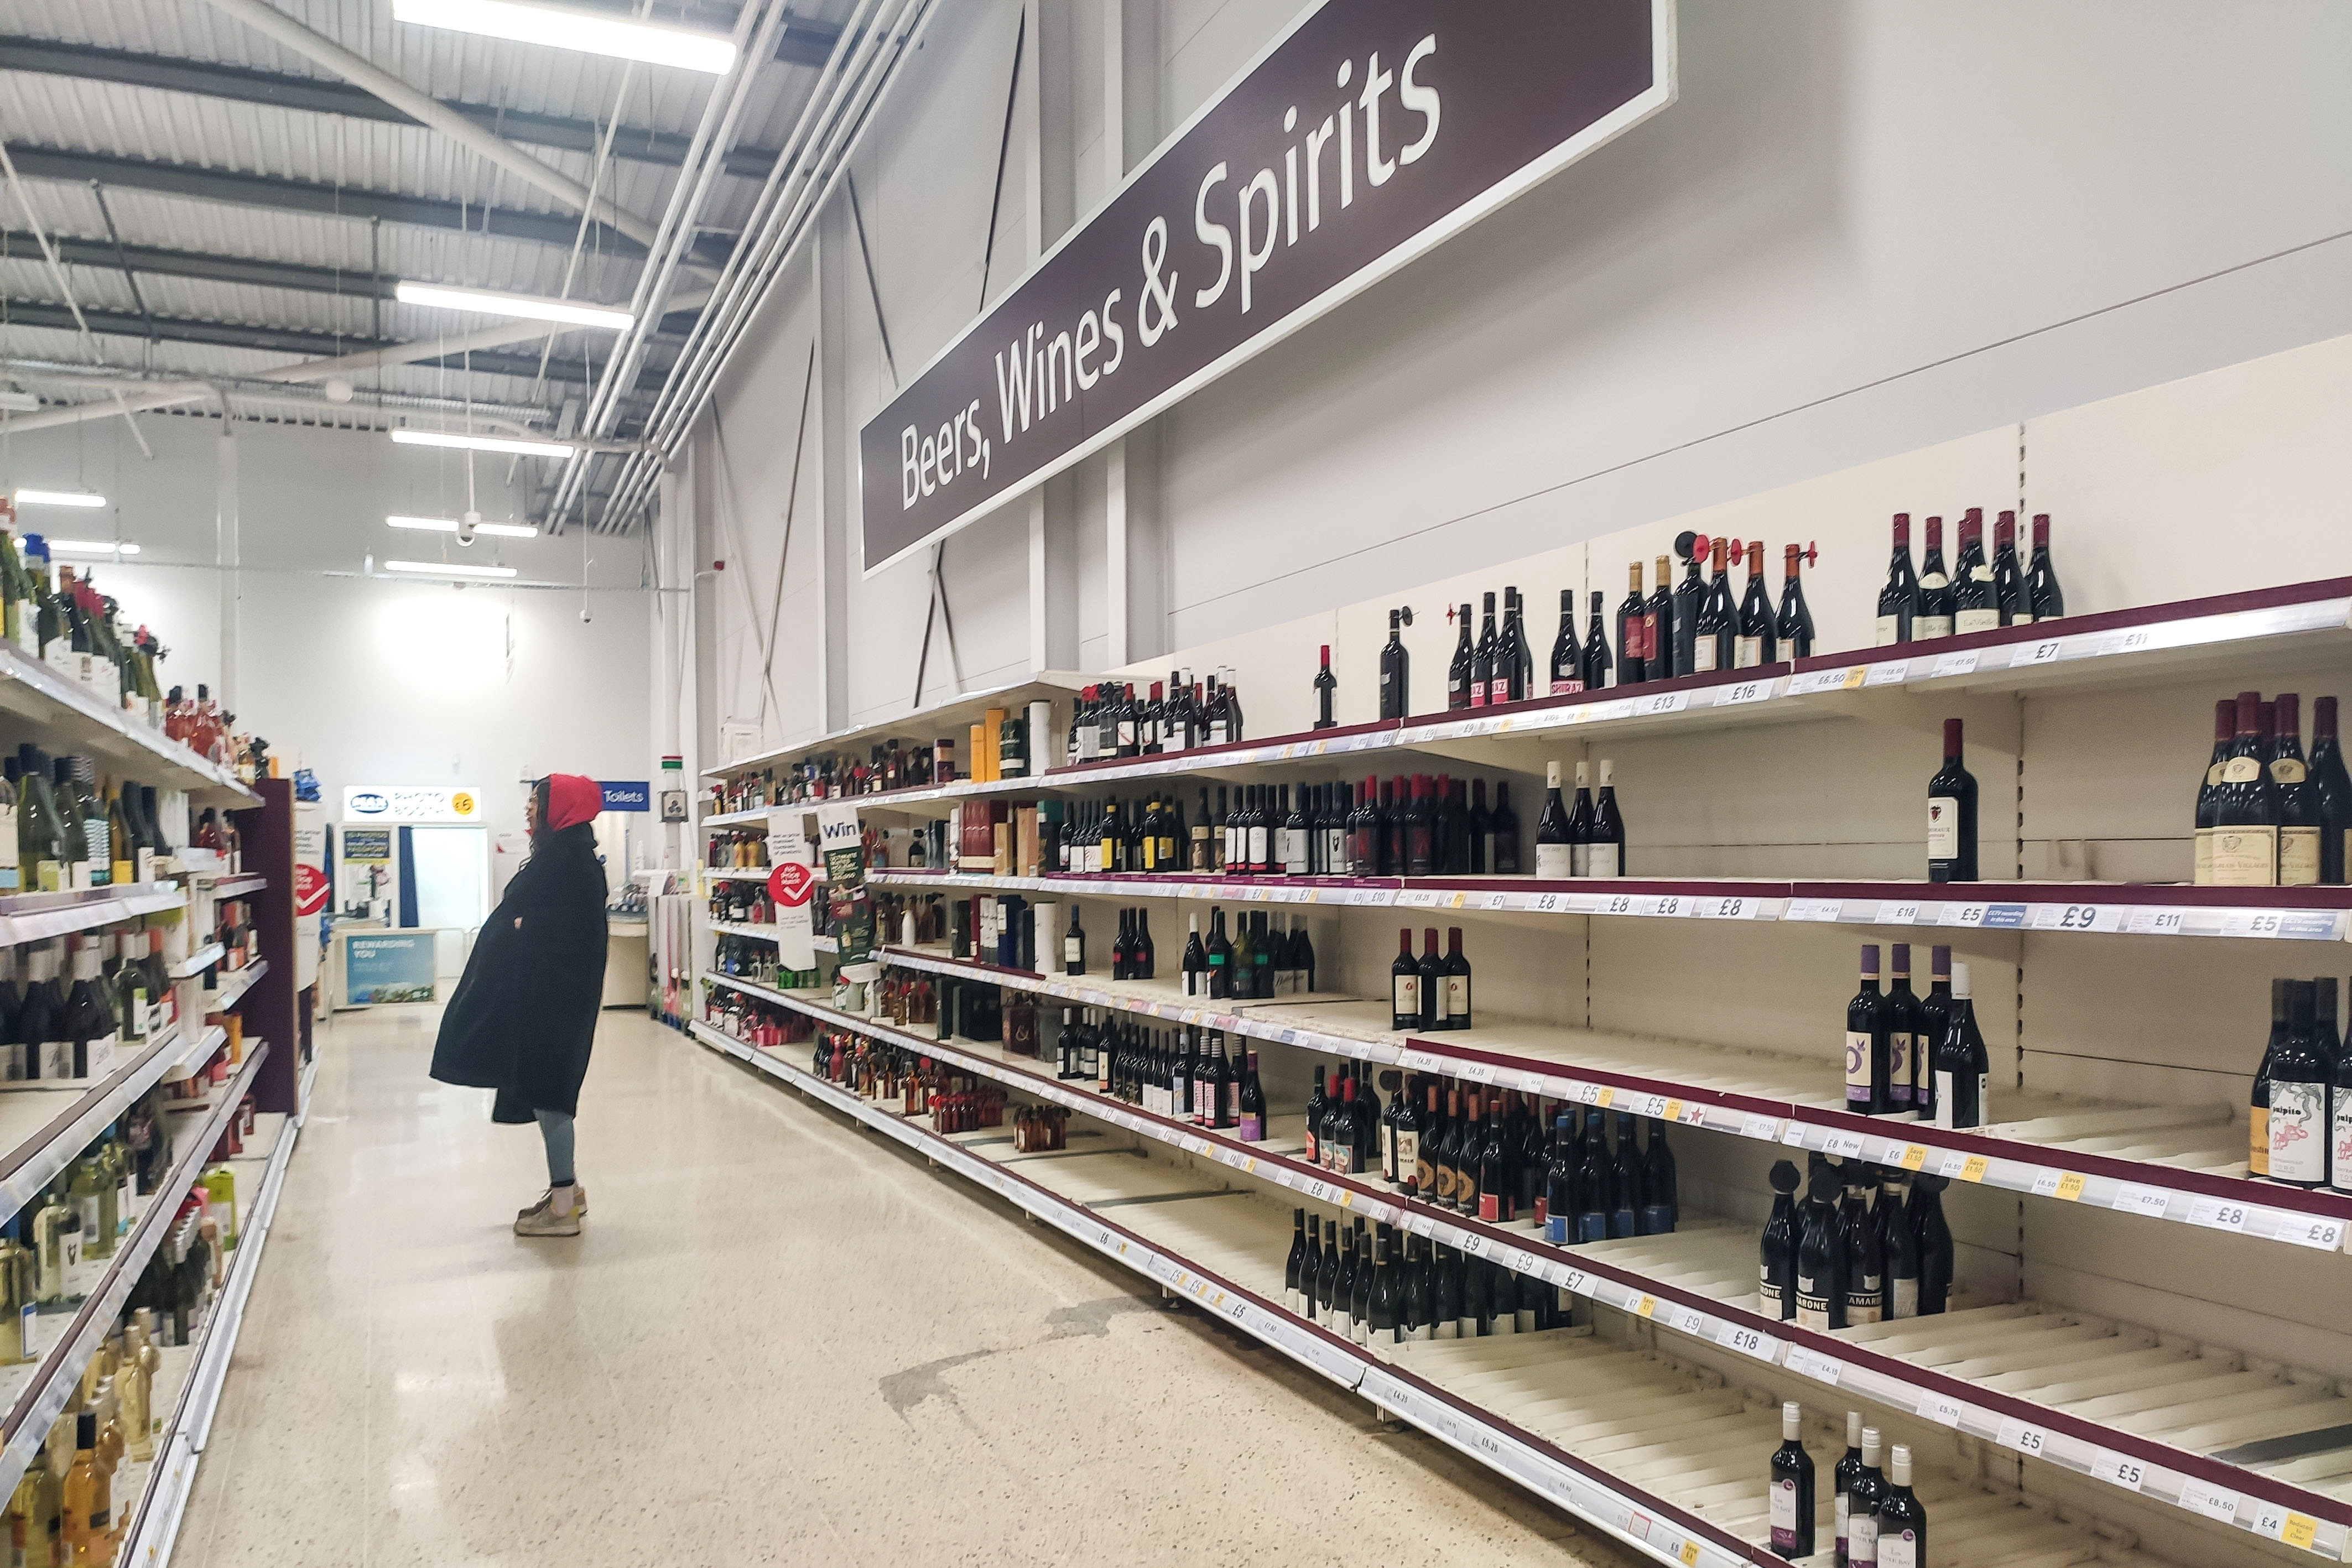 Brits have turned to booze and rejected Dry January with alcohol sales rocketing in the first weeks of January